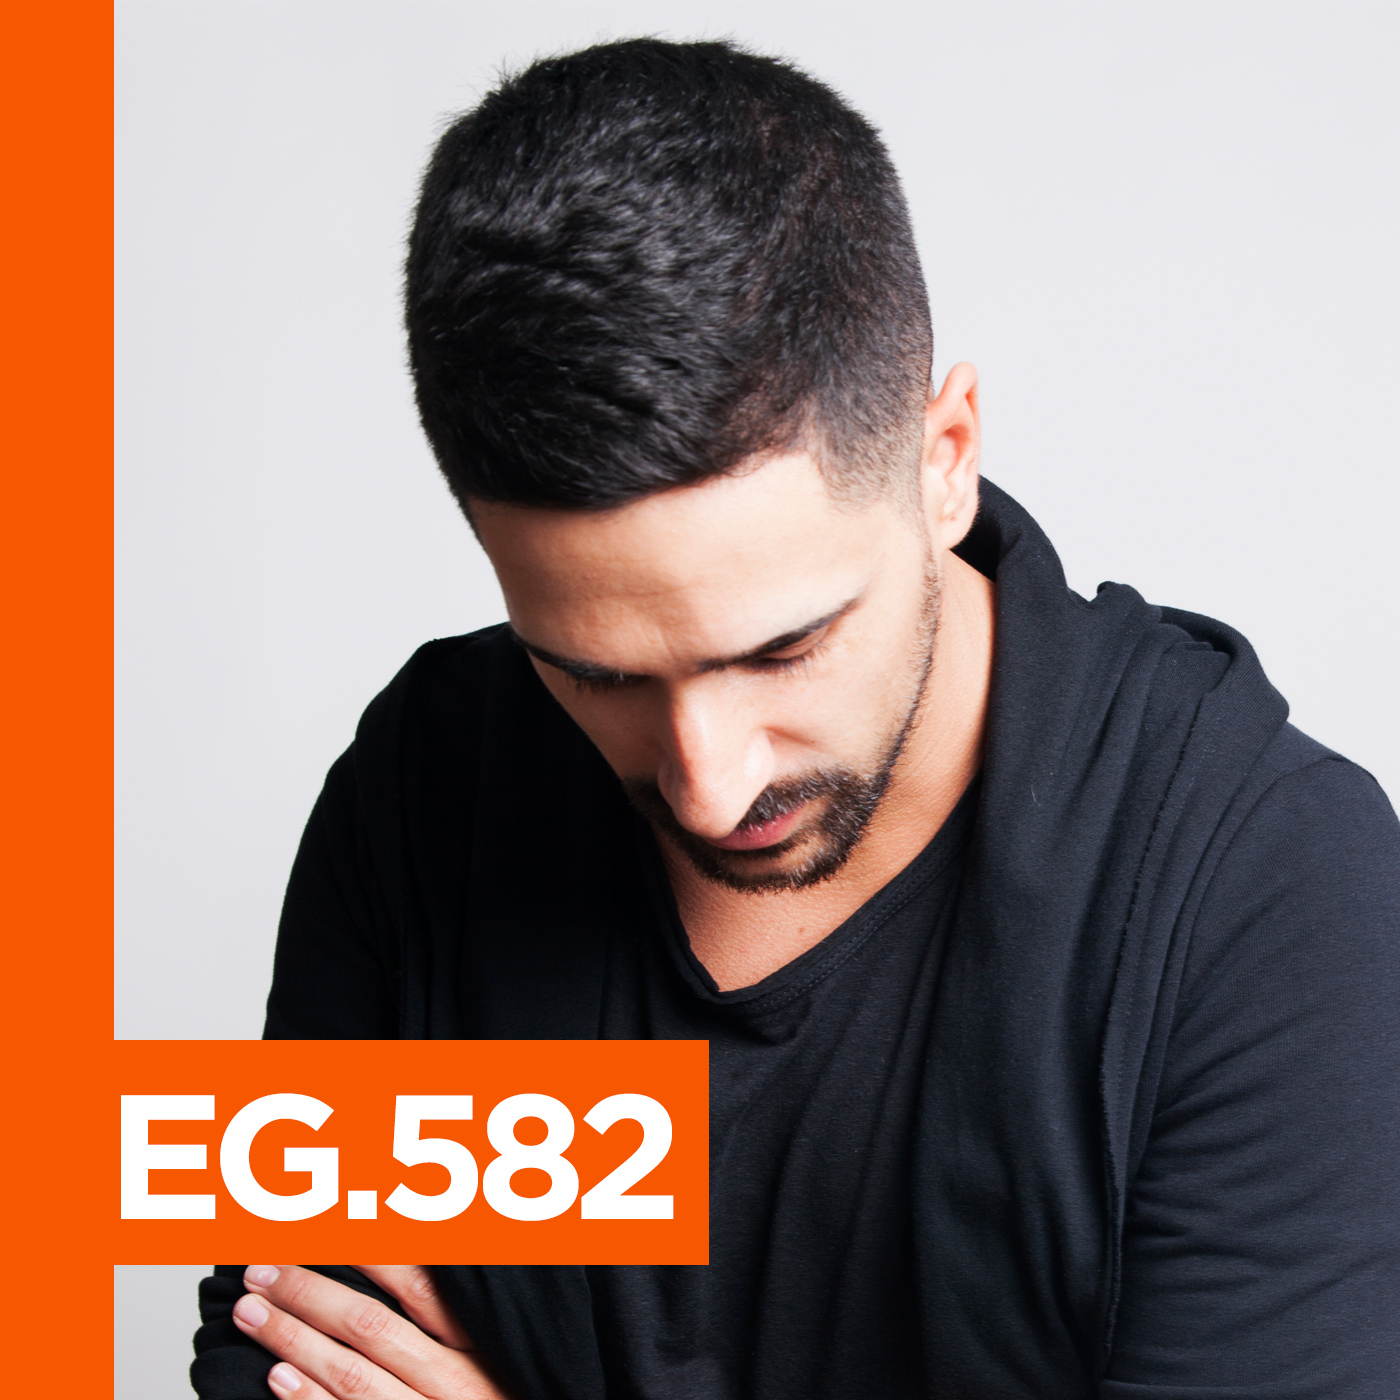 EG.582 Hector Couto (Sonar Special)